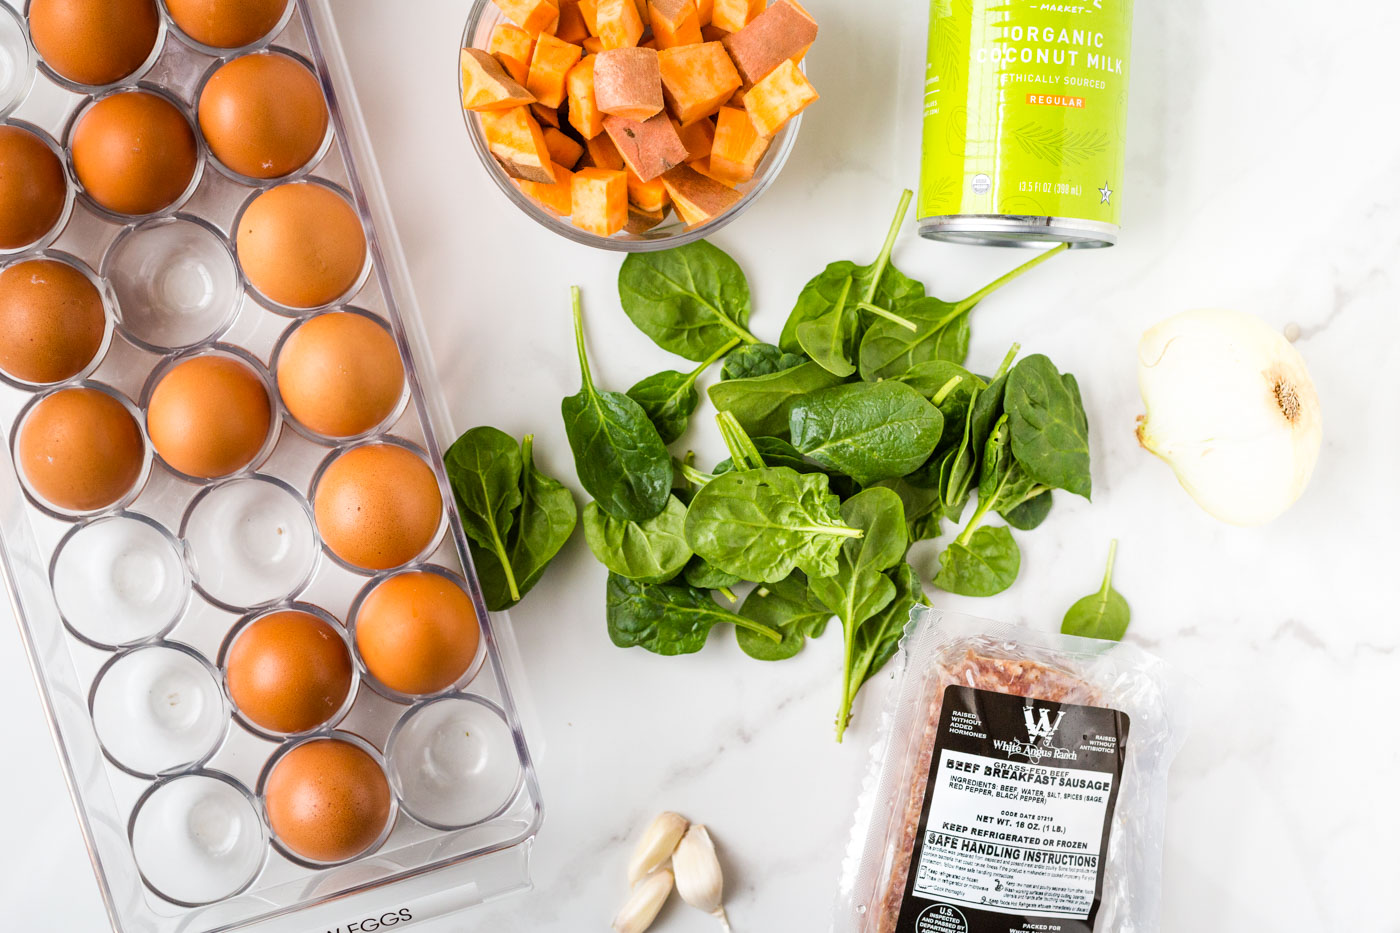 eggs, cubed sweet potato, spinach, breakfast sausage, half an onion, garlic cloves, and coconut milk on white background